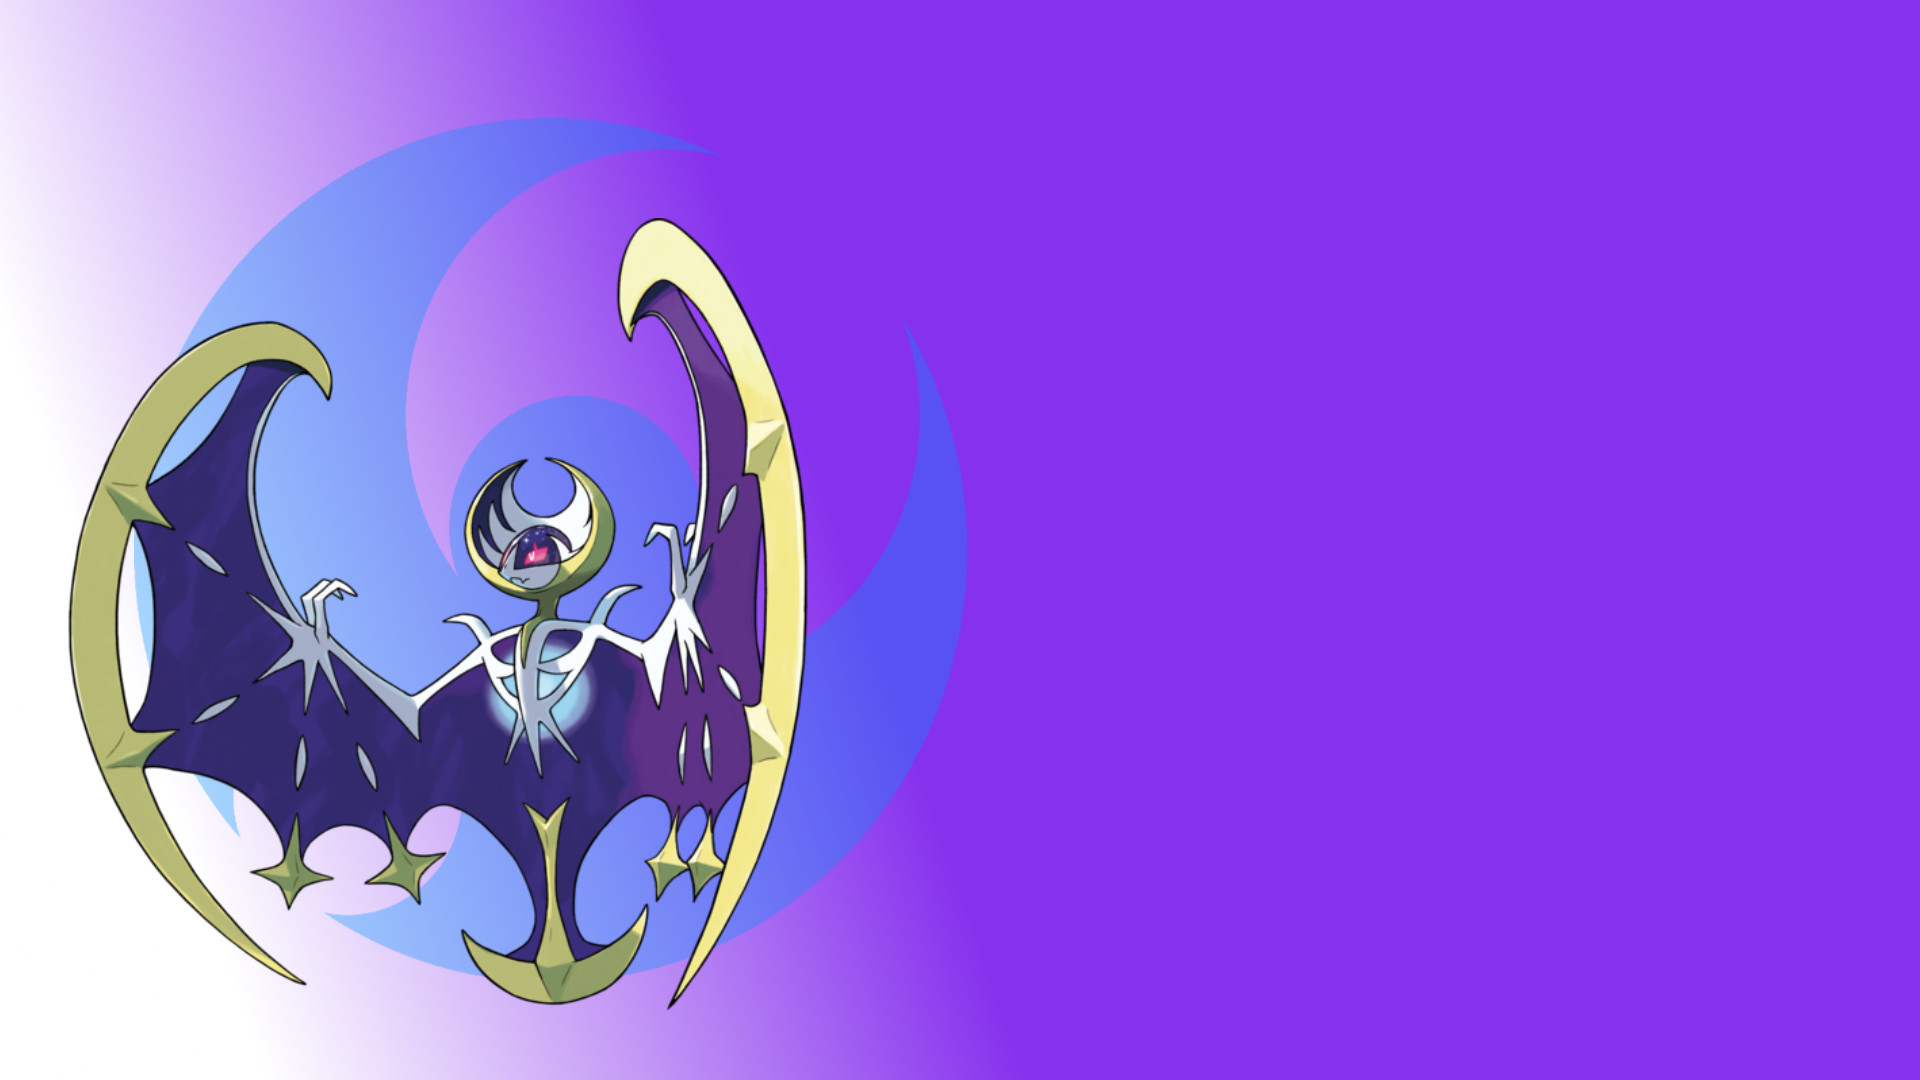 1920x1080 Lunala Wallpaper by Ehero47 Lunala Wallpaper by Ehero47